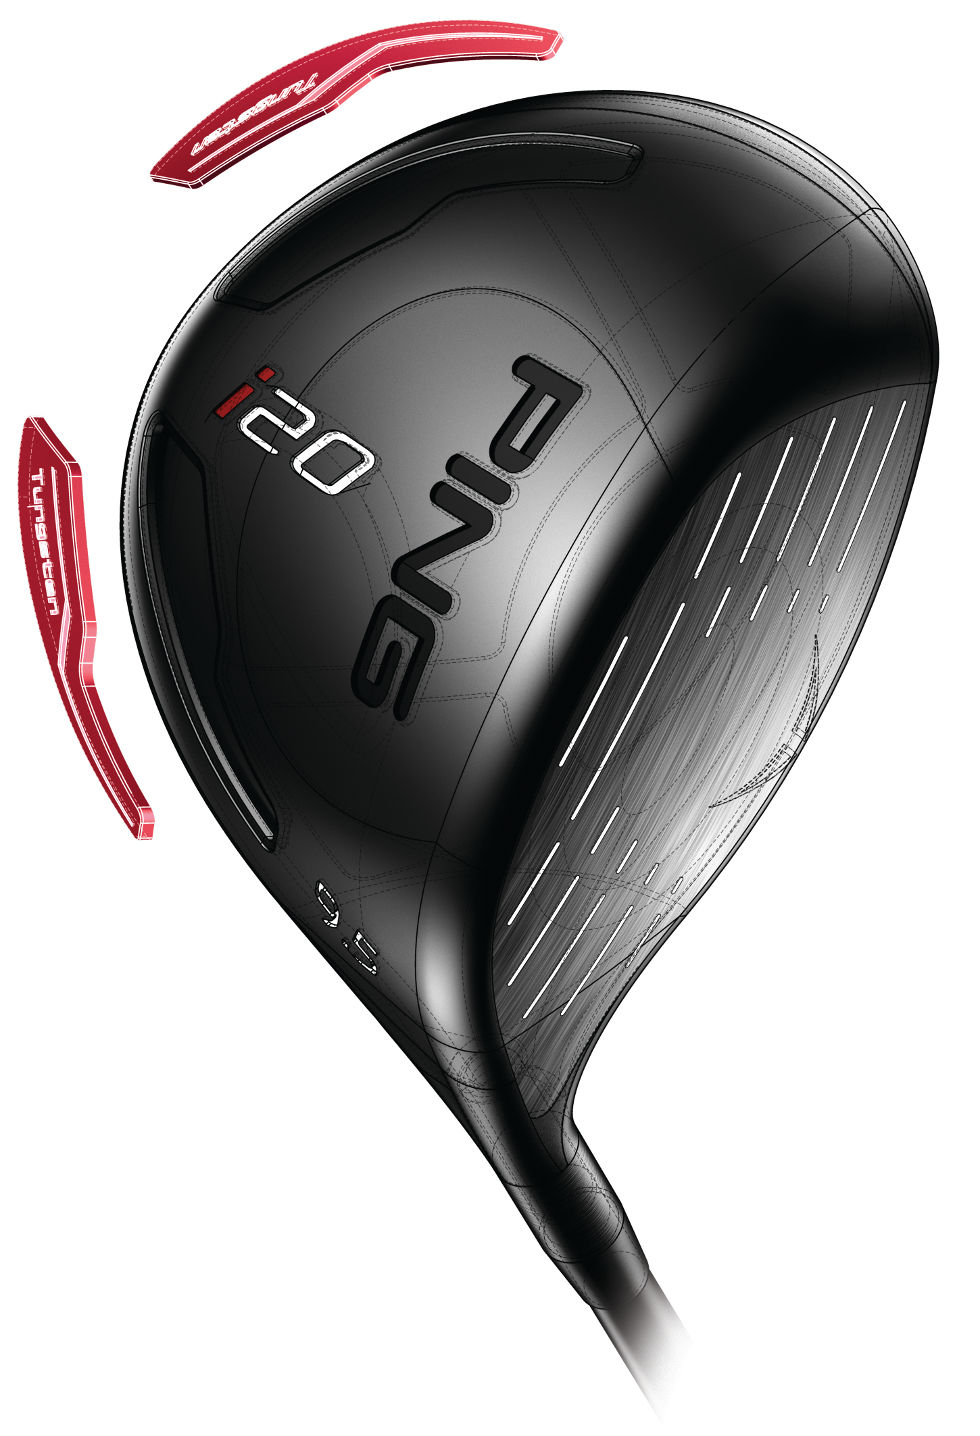 PING i20 Tungsten Weighting